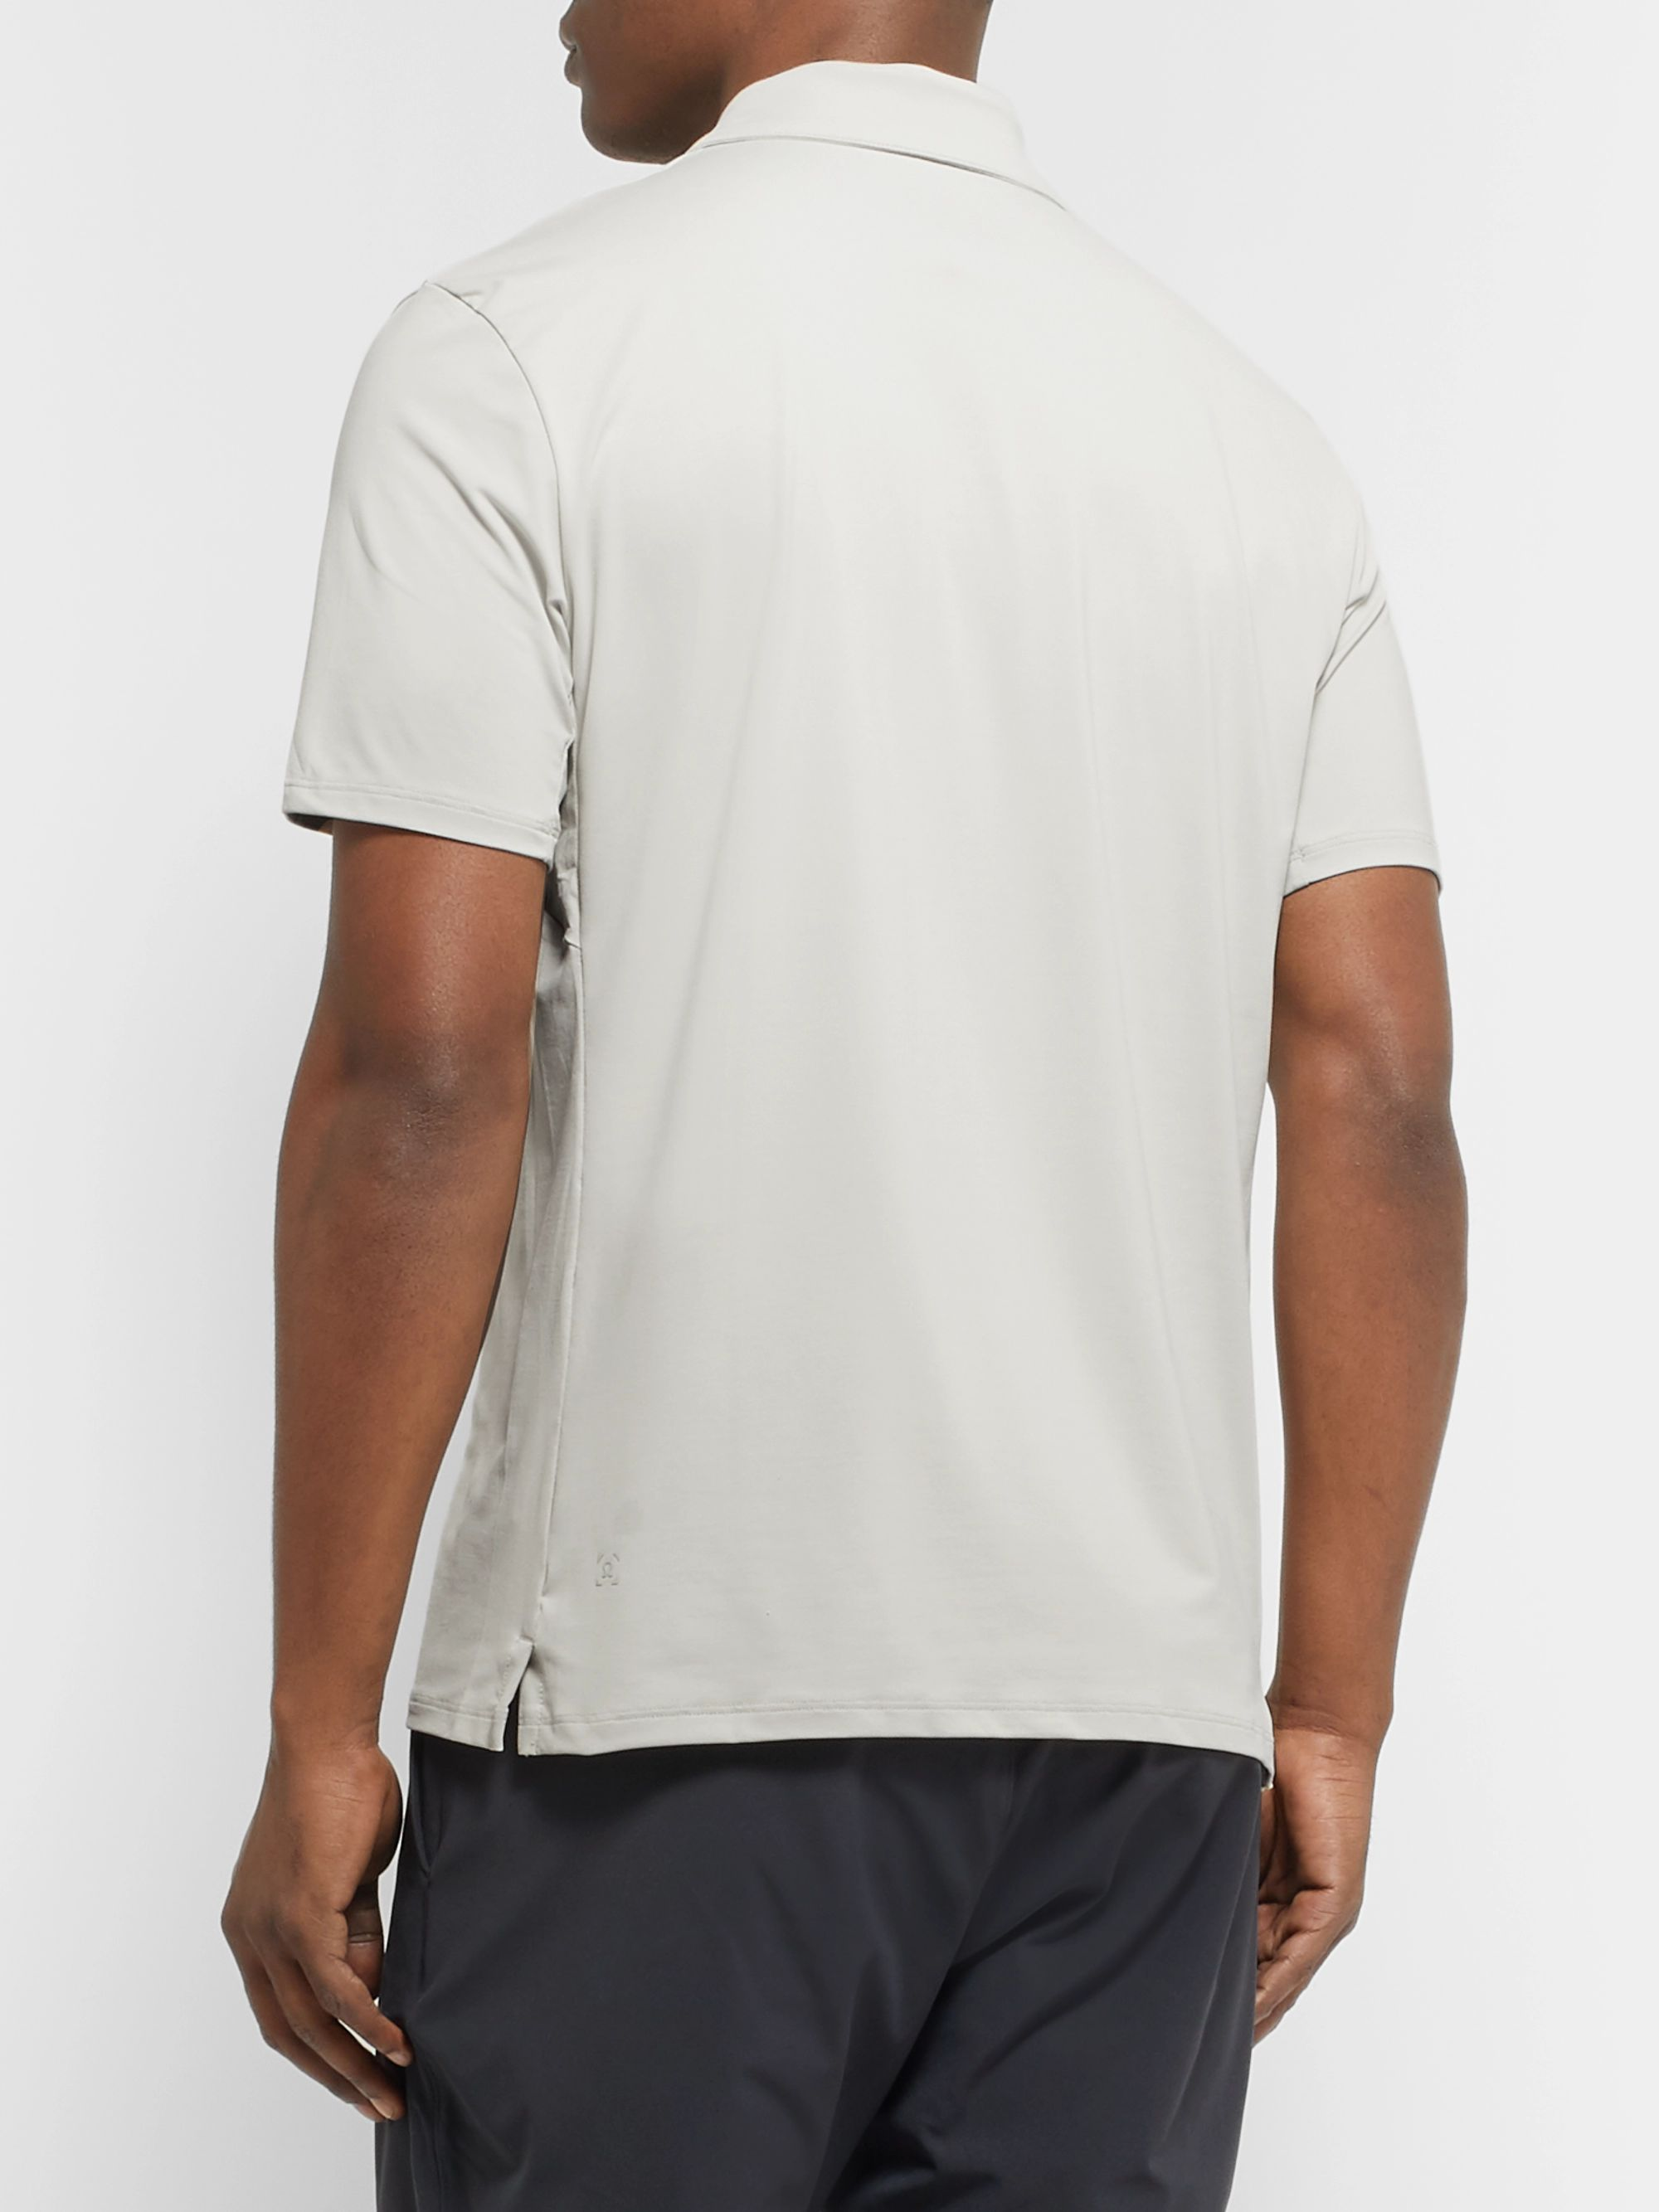 Lululemon Capacity Luxtreme Polo Shirt